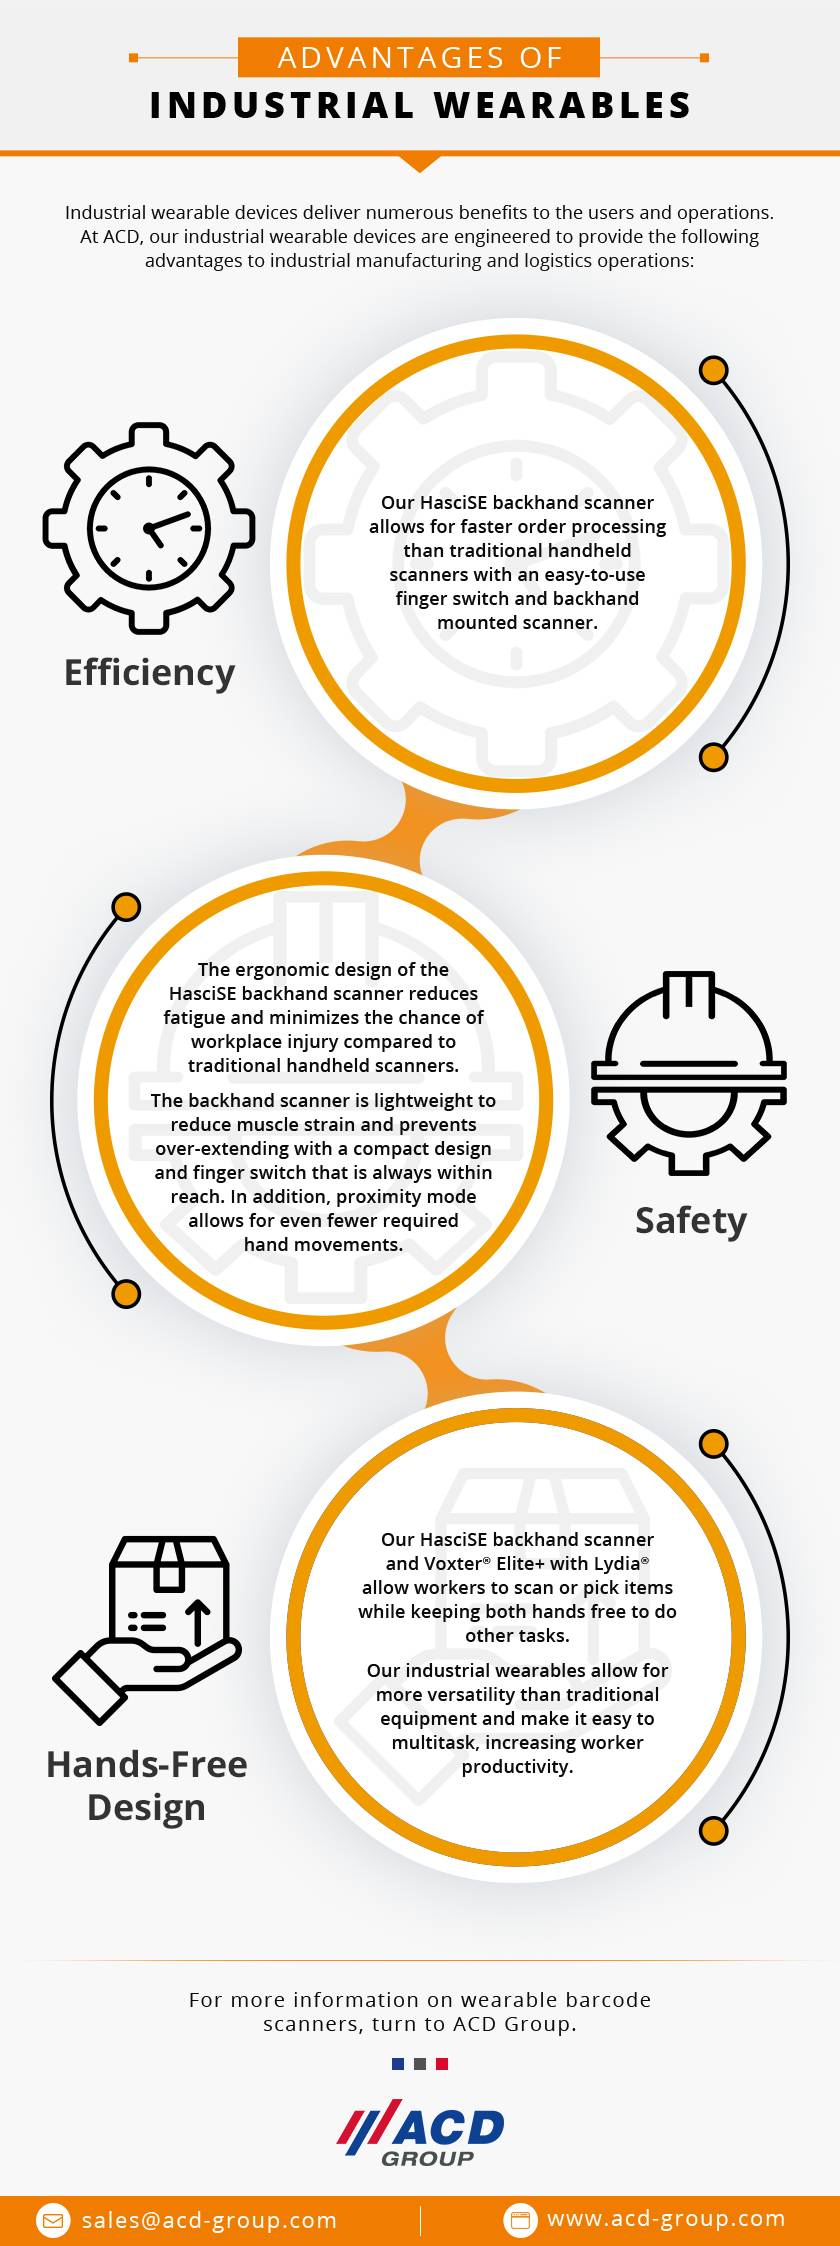 Advantages of Industrial Wearables